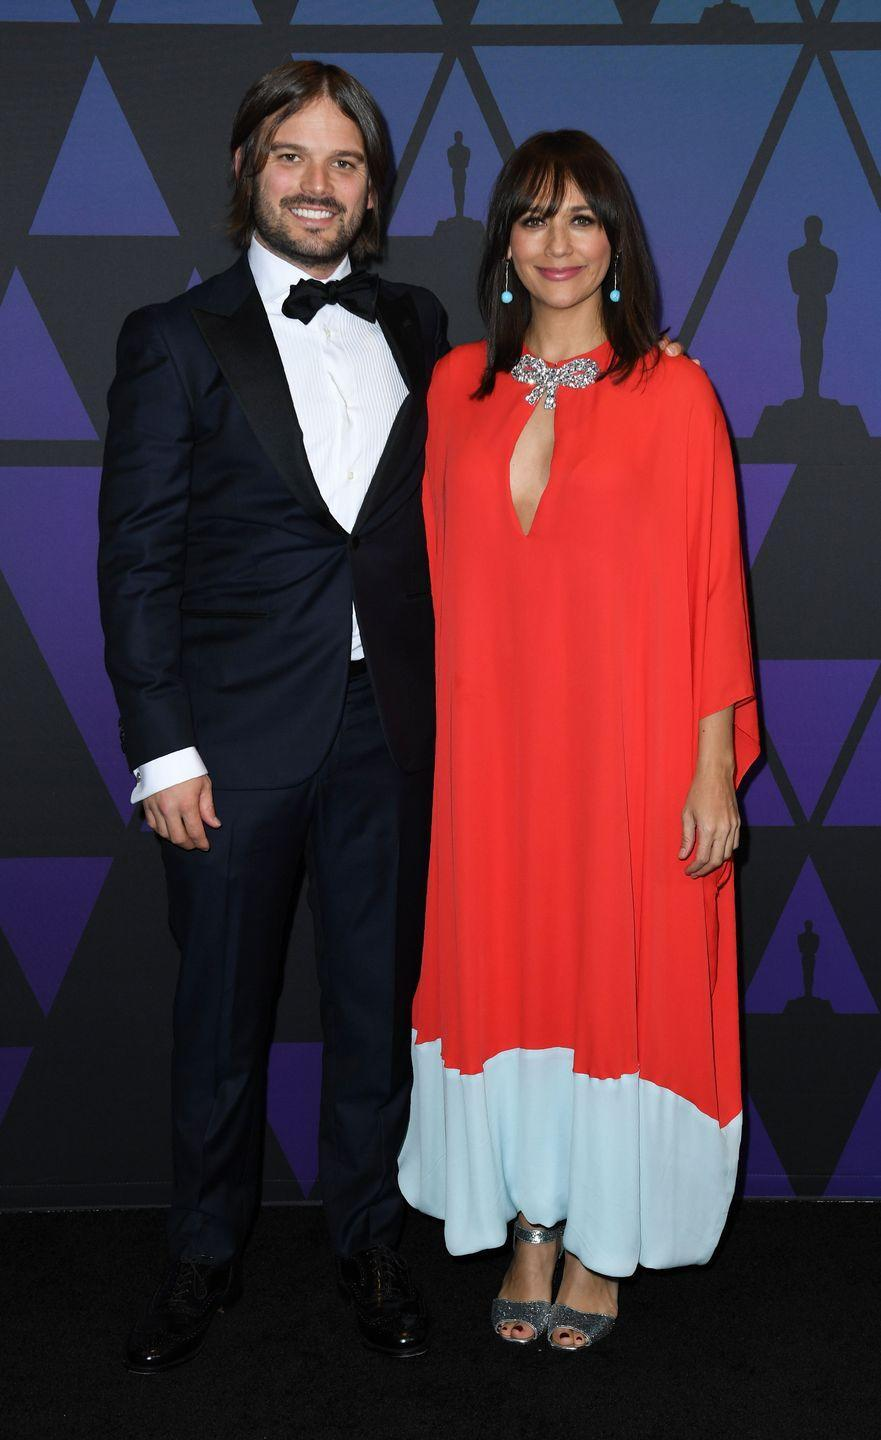 <p>Rashida Jones gave birth to her and her partner Ezra Koenig's son, Isaiah, in August 2018. But she kept her pregnancy and birth a secret up until after it happened. Impressive.</p>